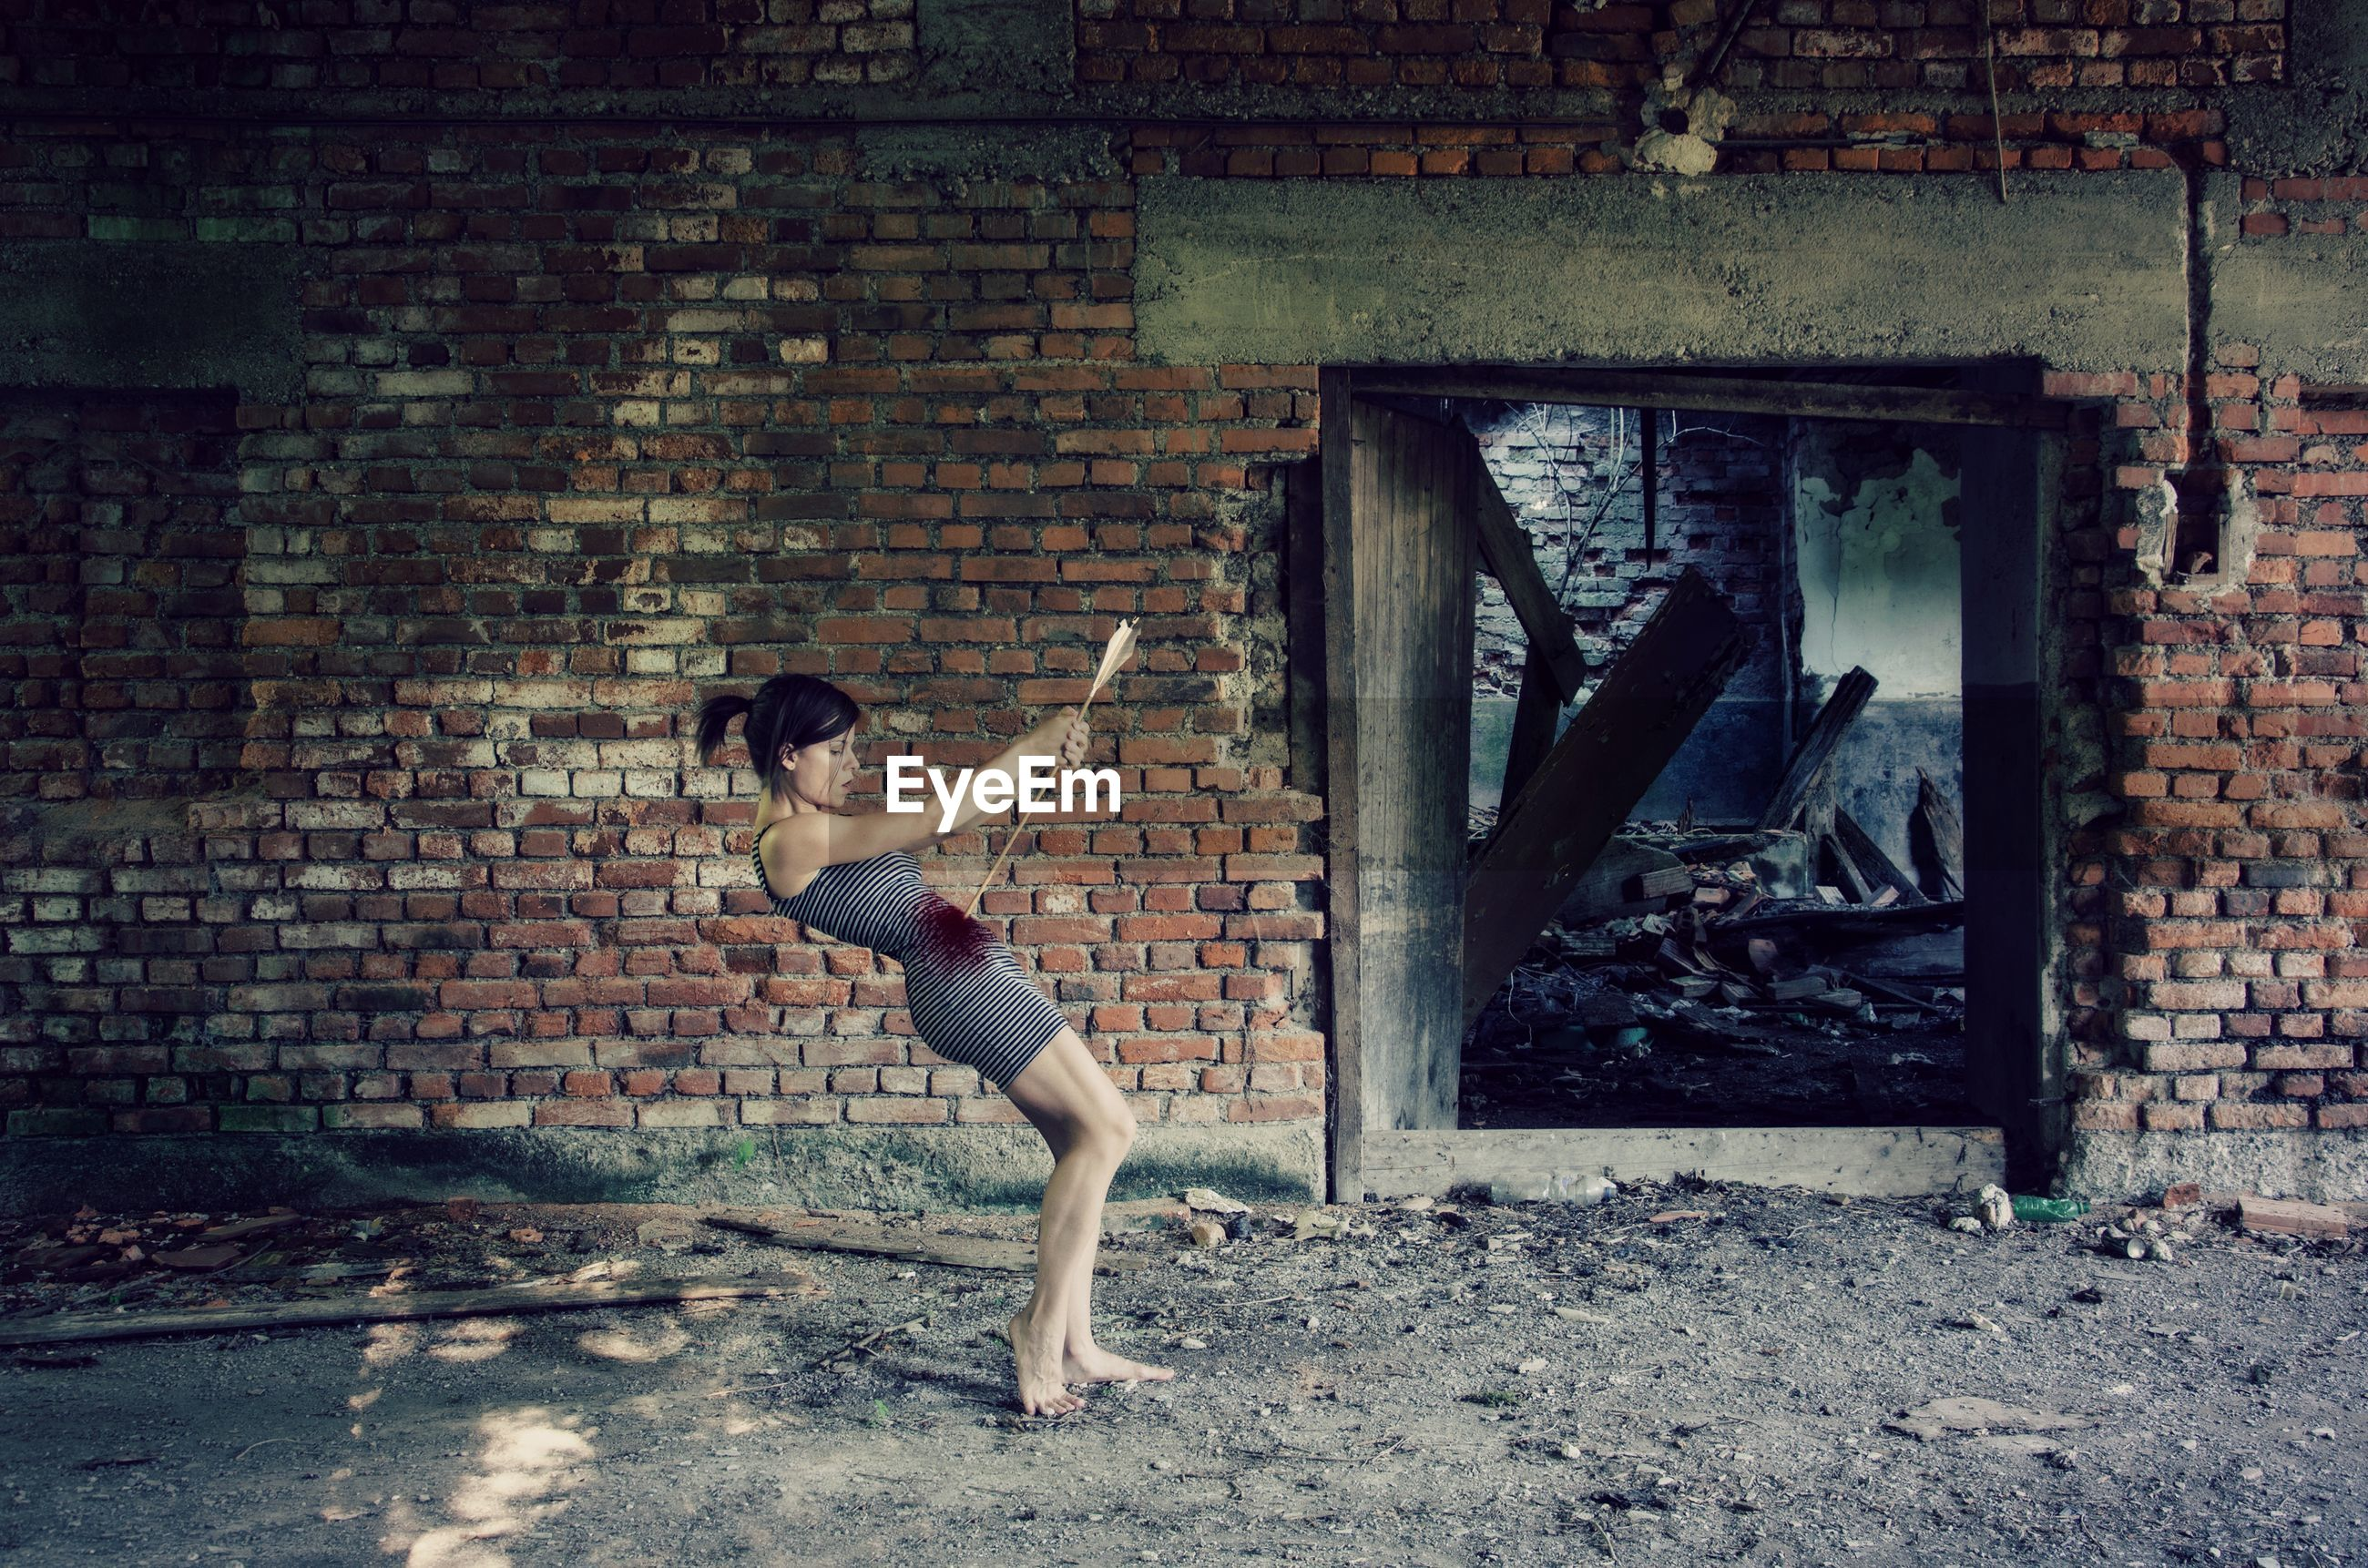 Digital compromise image of young woman killing herself with arrow by abandoned building